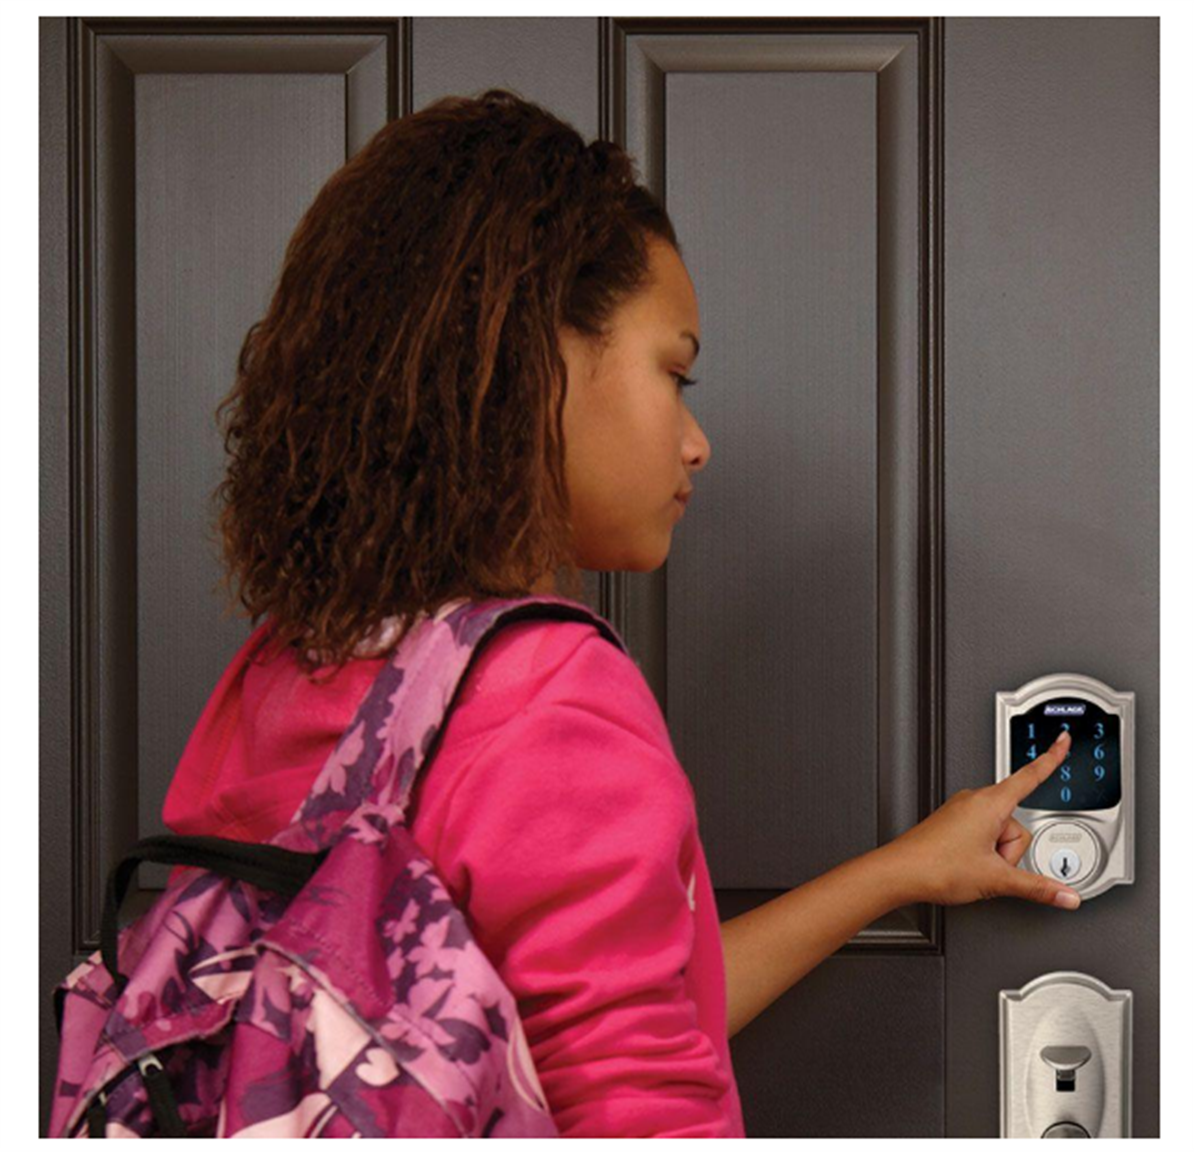 Home Depot – Up to 40% off Select Smart Door Locks (TODAY ONLY)